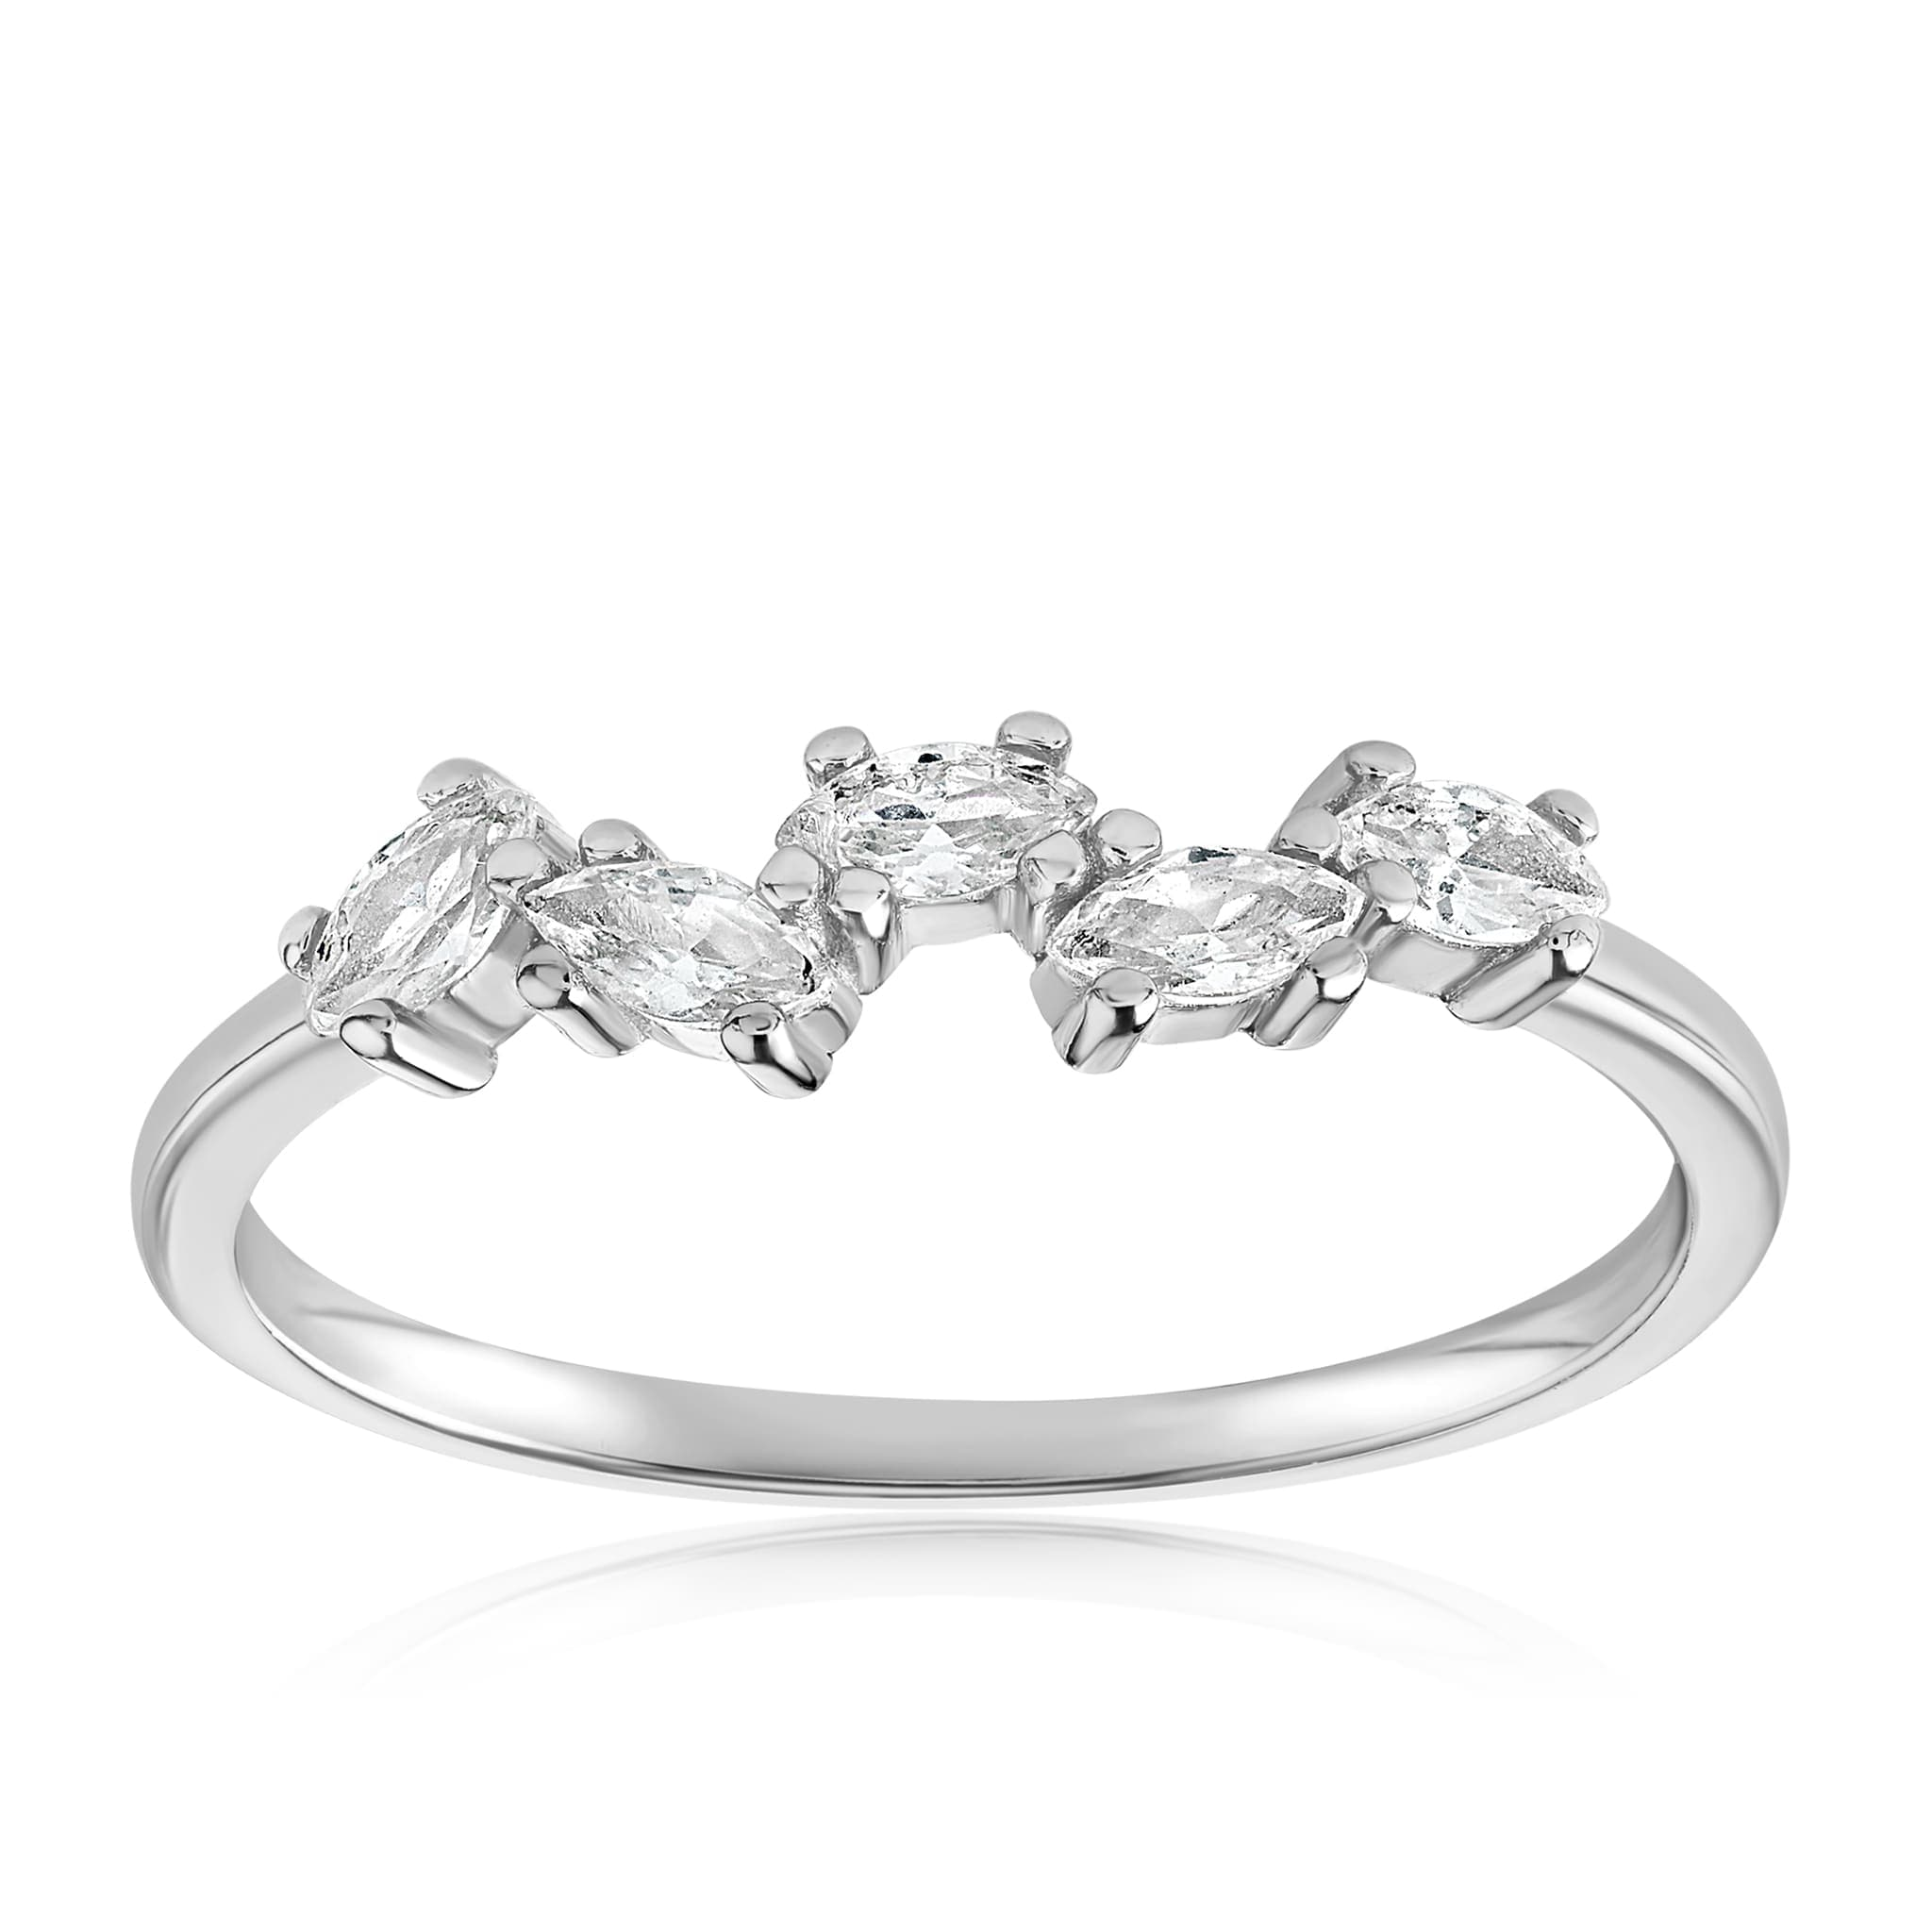 Genna Round Cut Ring - Front View Facing Up - 925 Sterling Silver